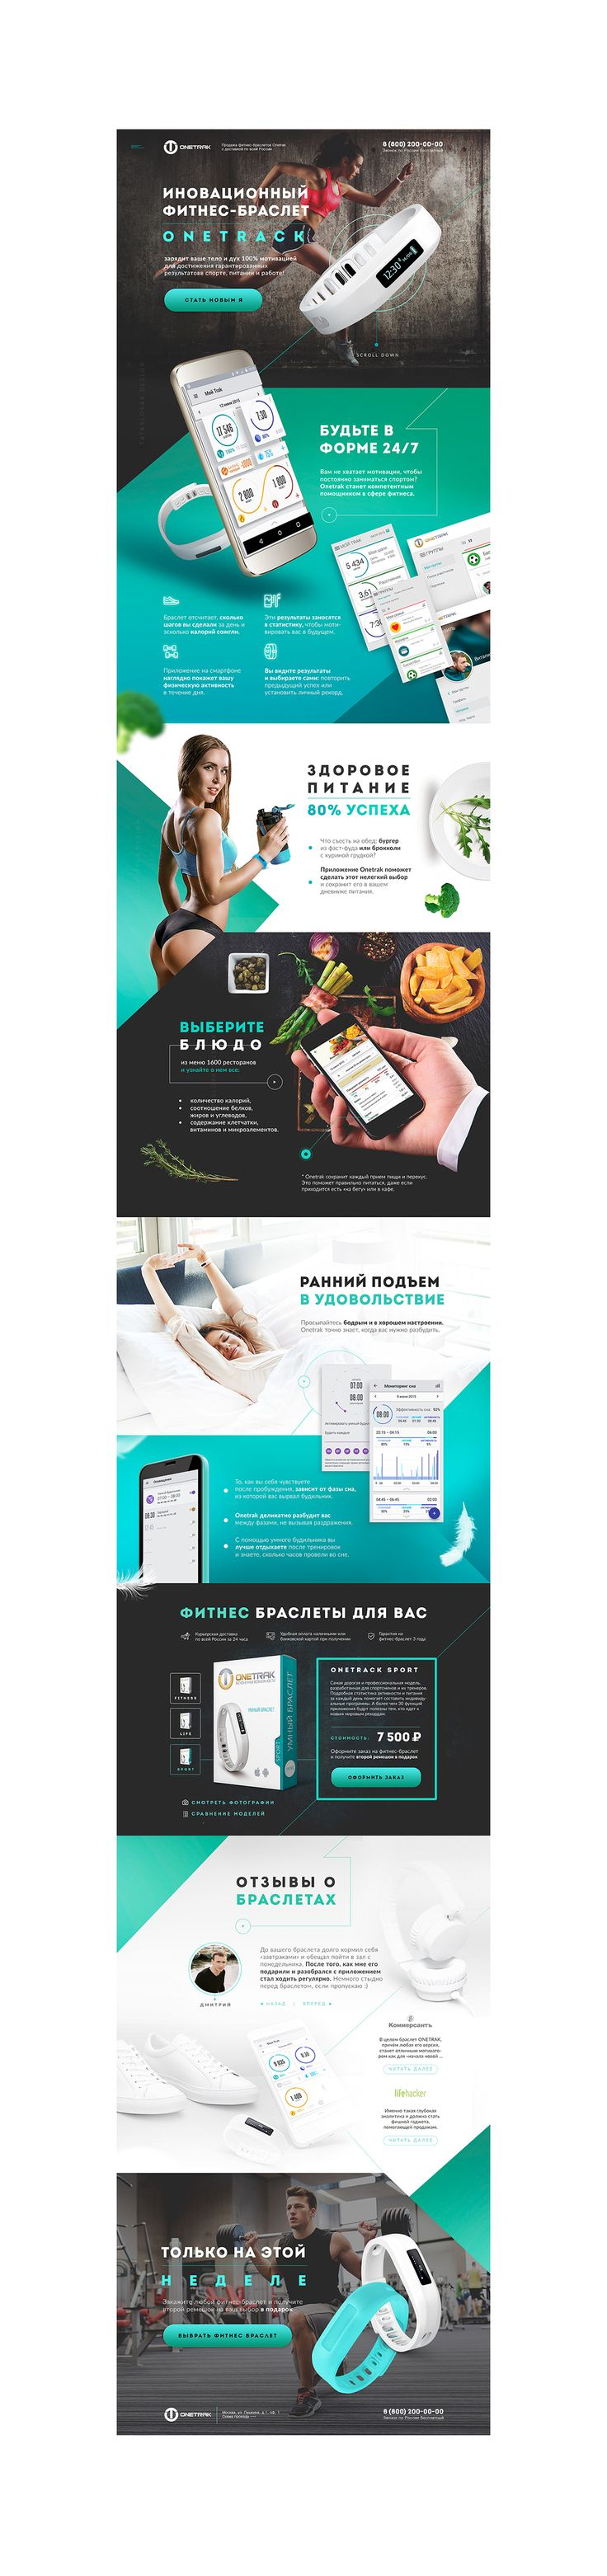 ONETRAK - activity sport fitness tracker onepage on Behance